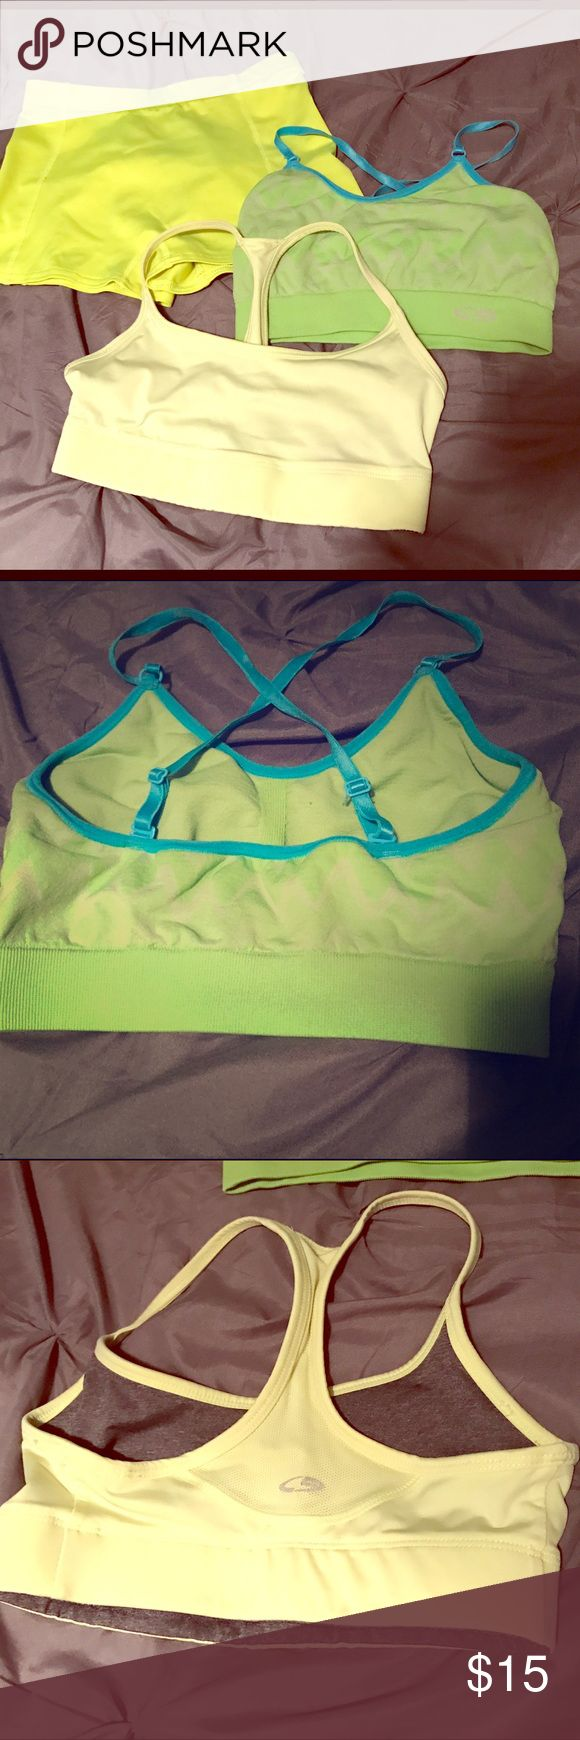 Two champion sports bras and yellow spandex shorts Shorts are size L in juniors (night yellow). Champion bras XS (light yellow and green/blue chevron cross back) Champion Intimates & Sleepwear Bras